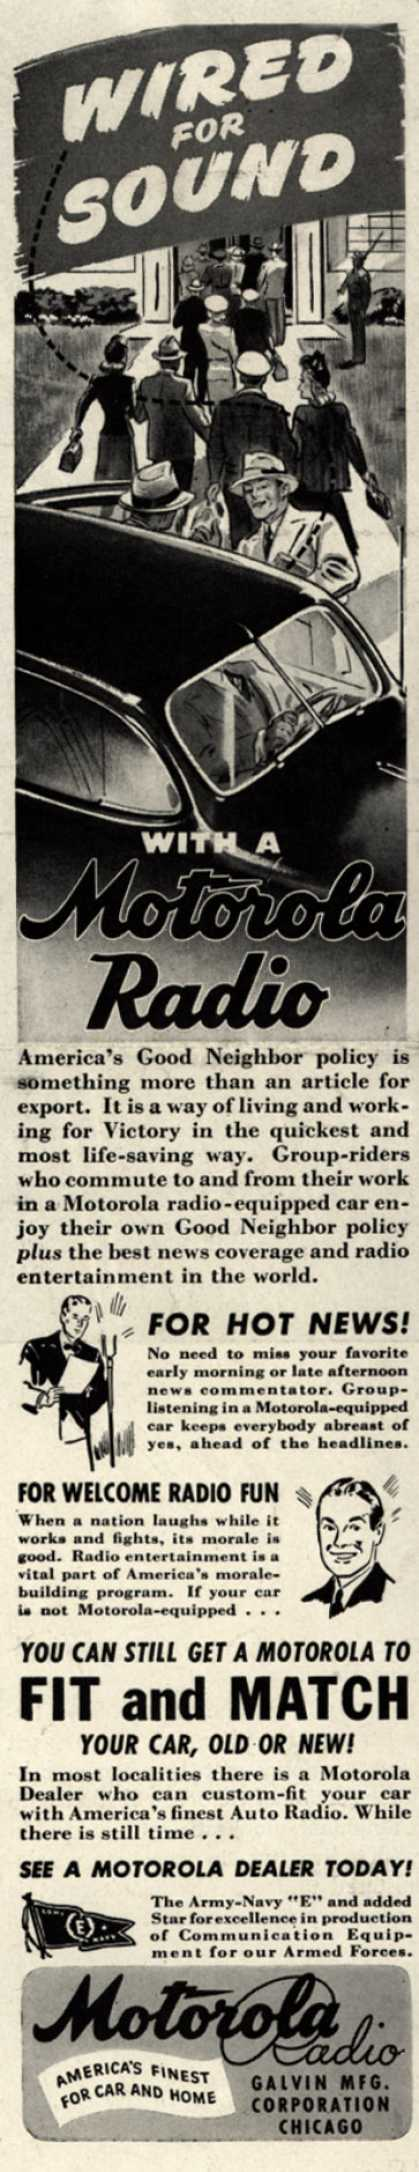 Galvin Manufacturing Corporation's Auto Radio – Wired for Sound with a Motorola Radio (1943)